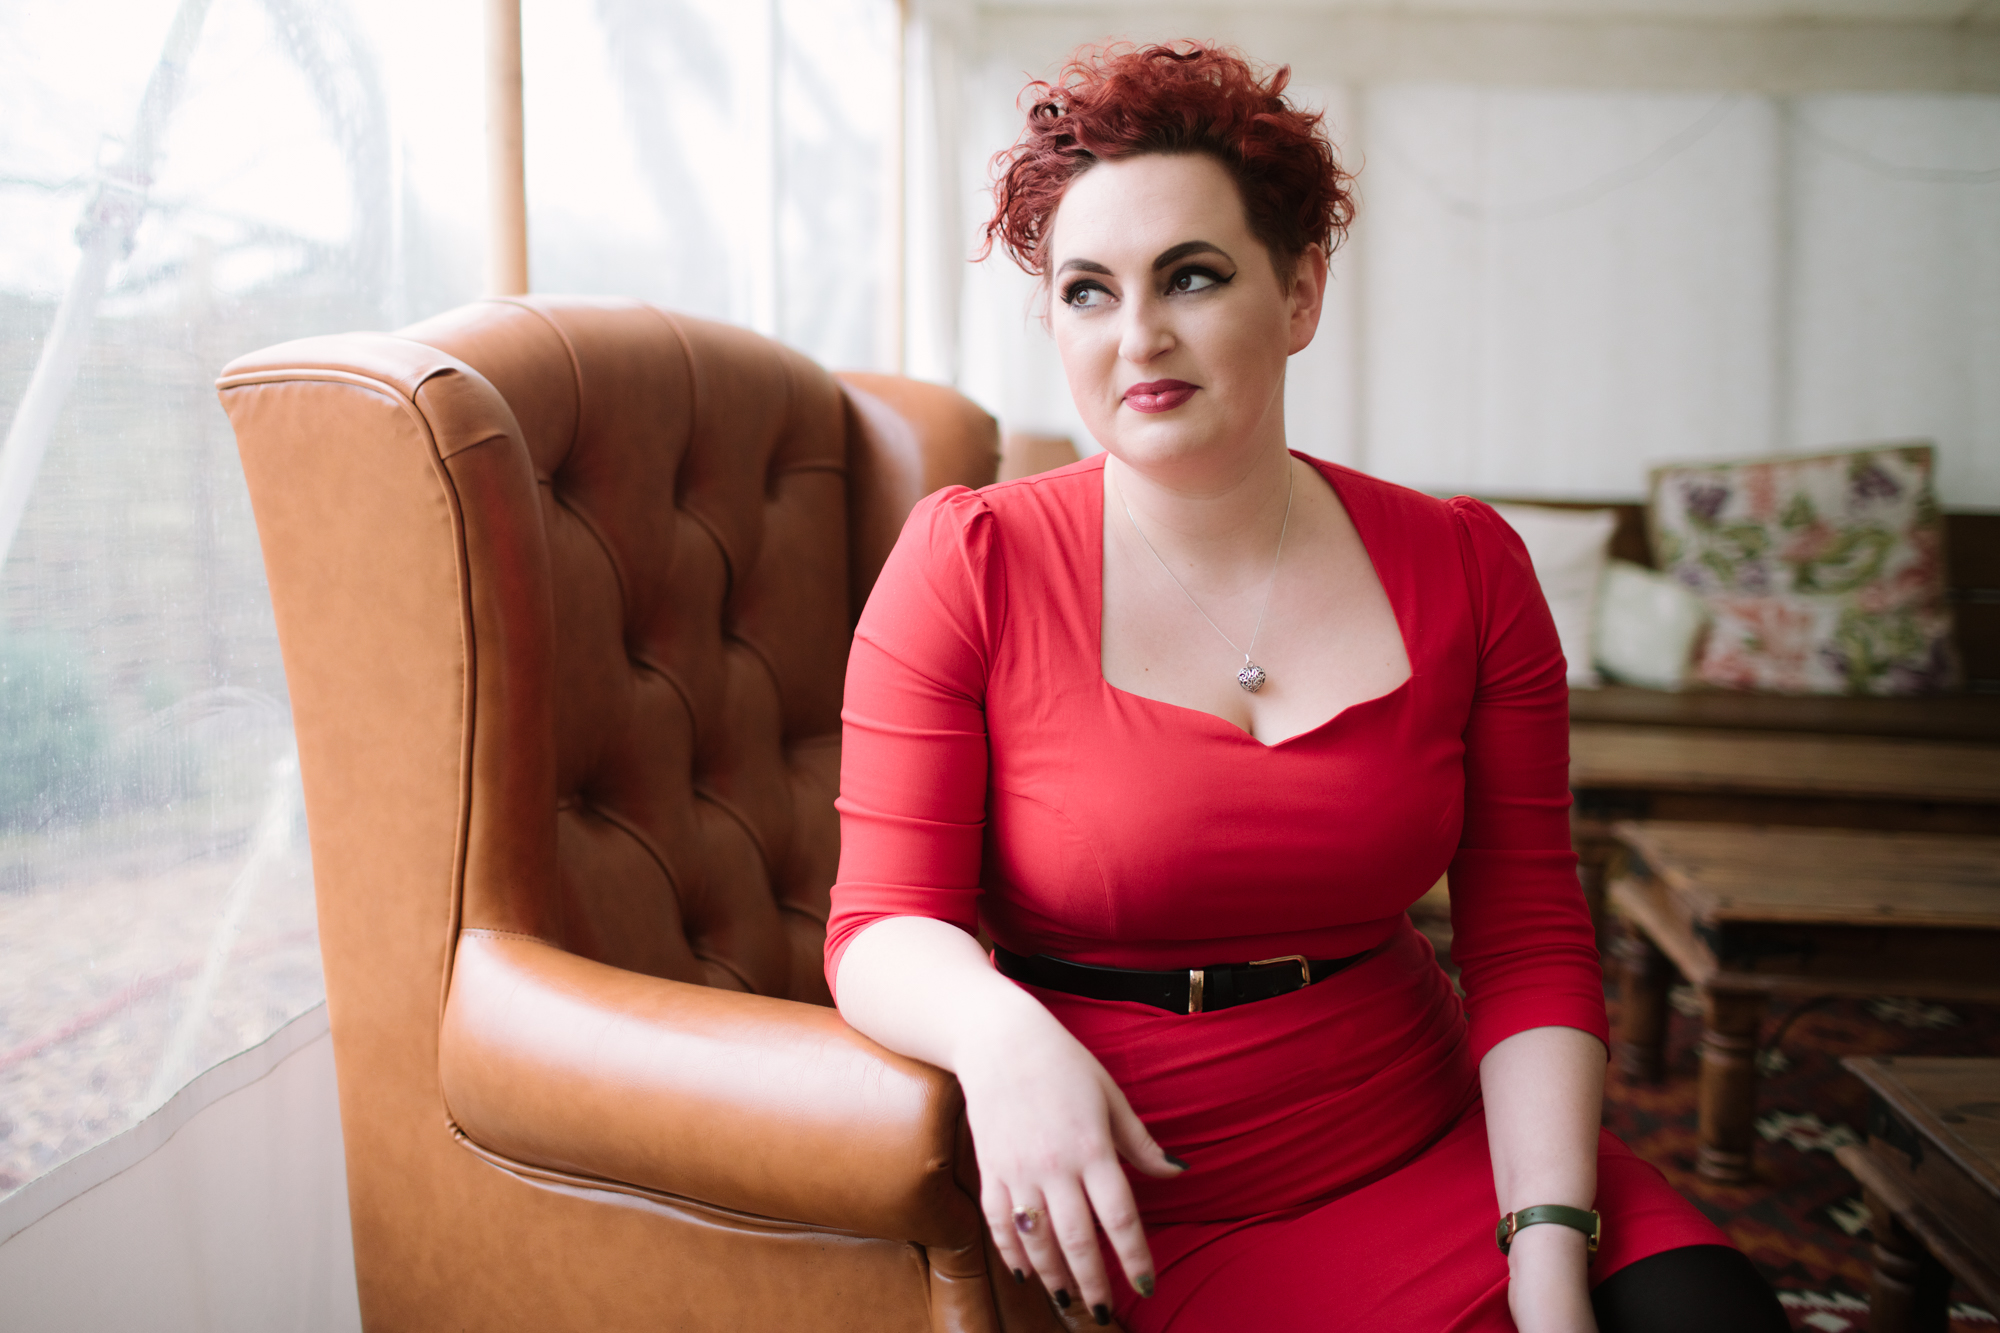 THE PERCH OXFORD EVENT MANAGER - BY PHILIPPA JAMES PHOTOGRAPHY